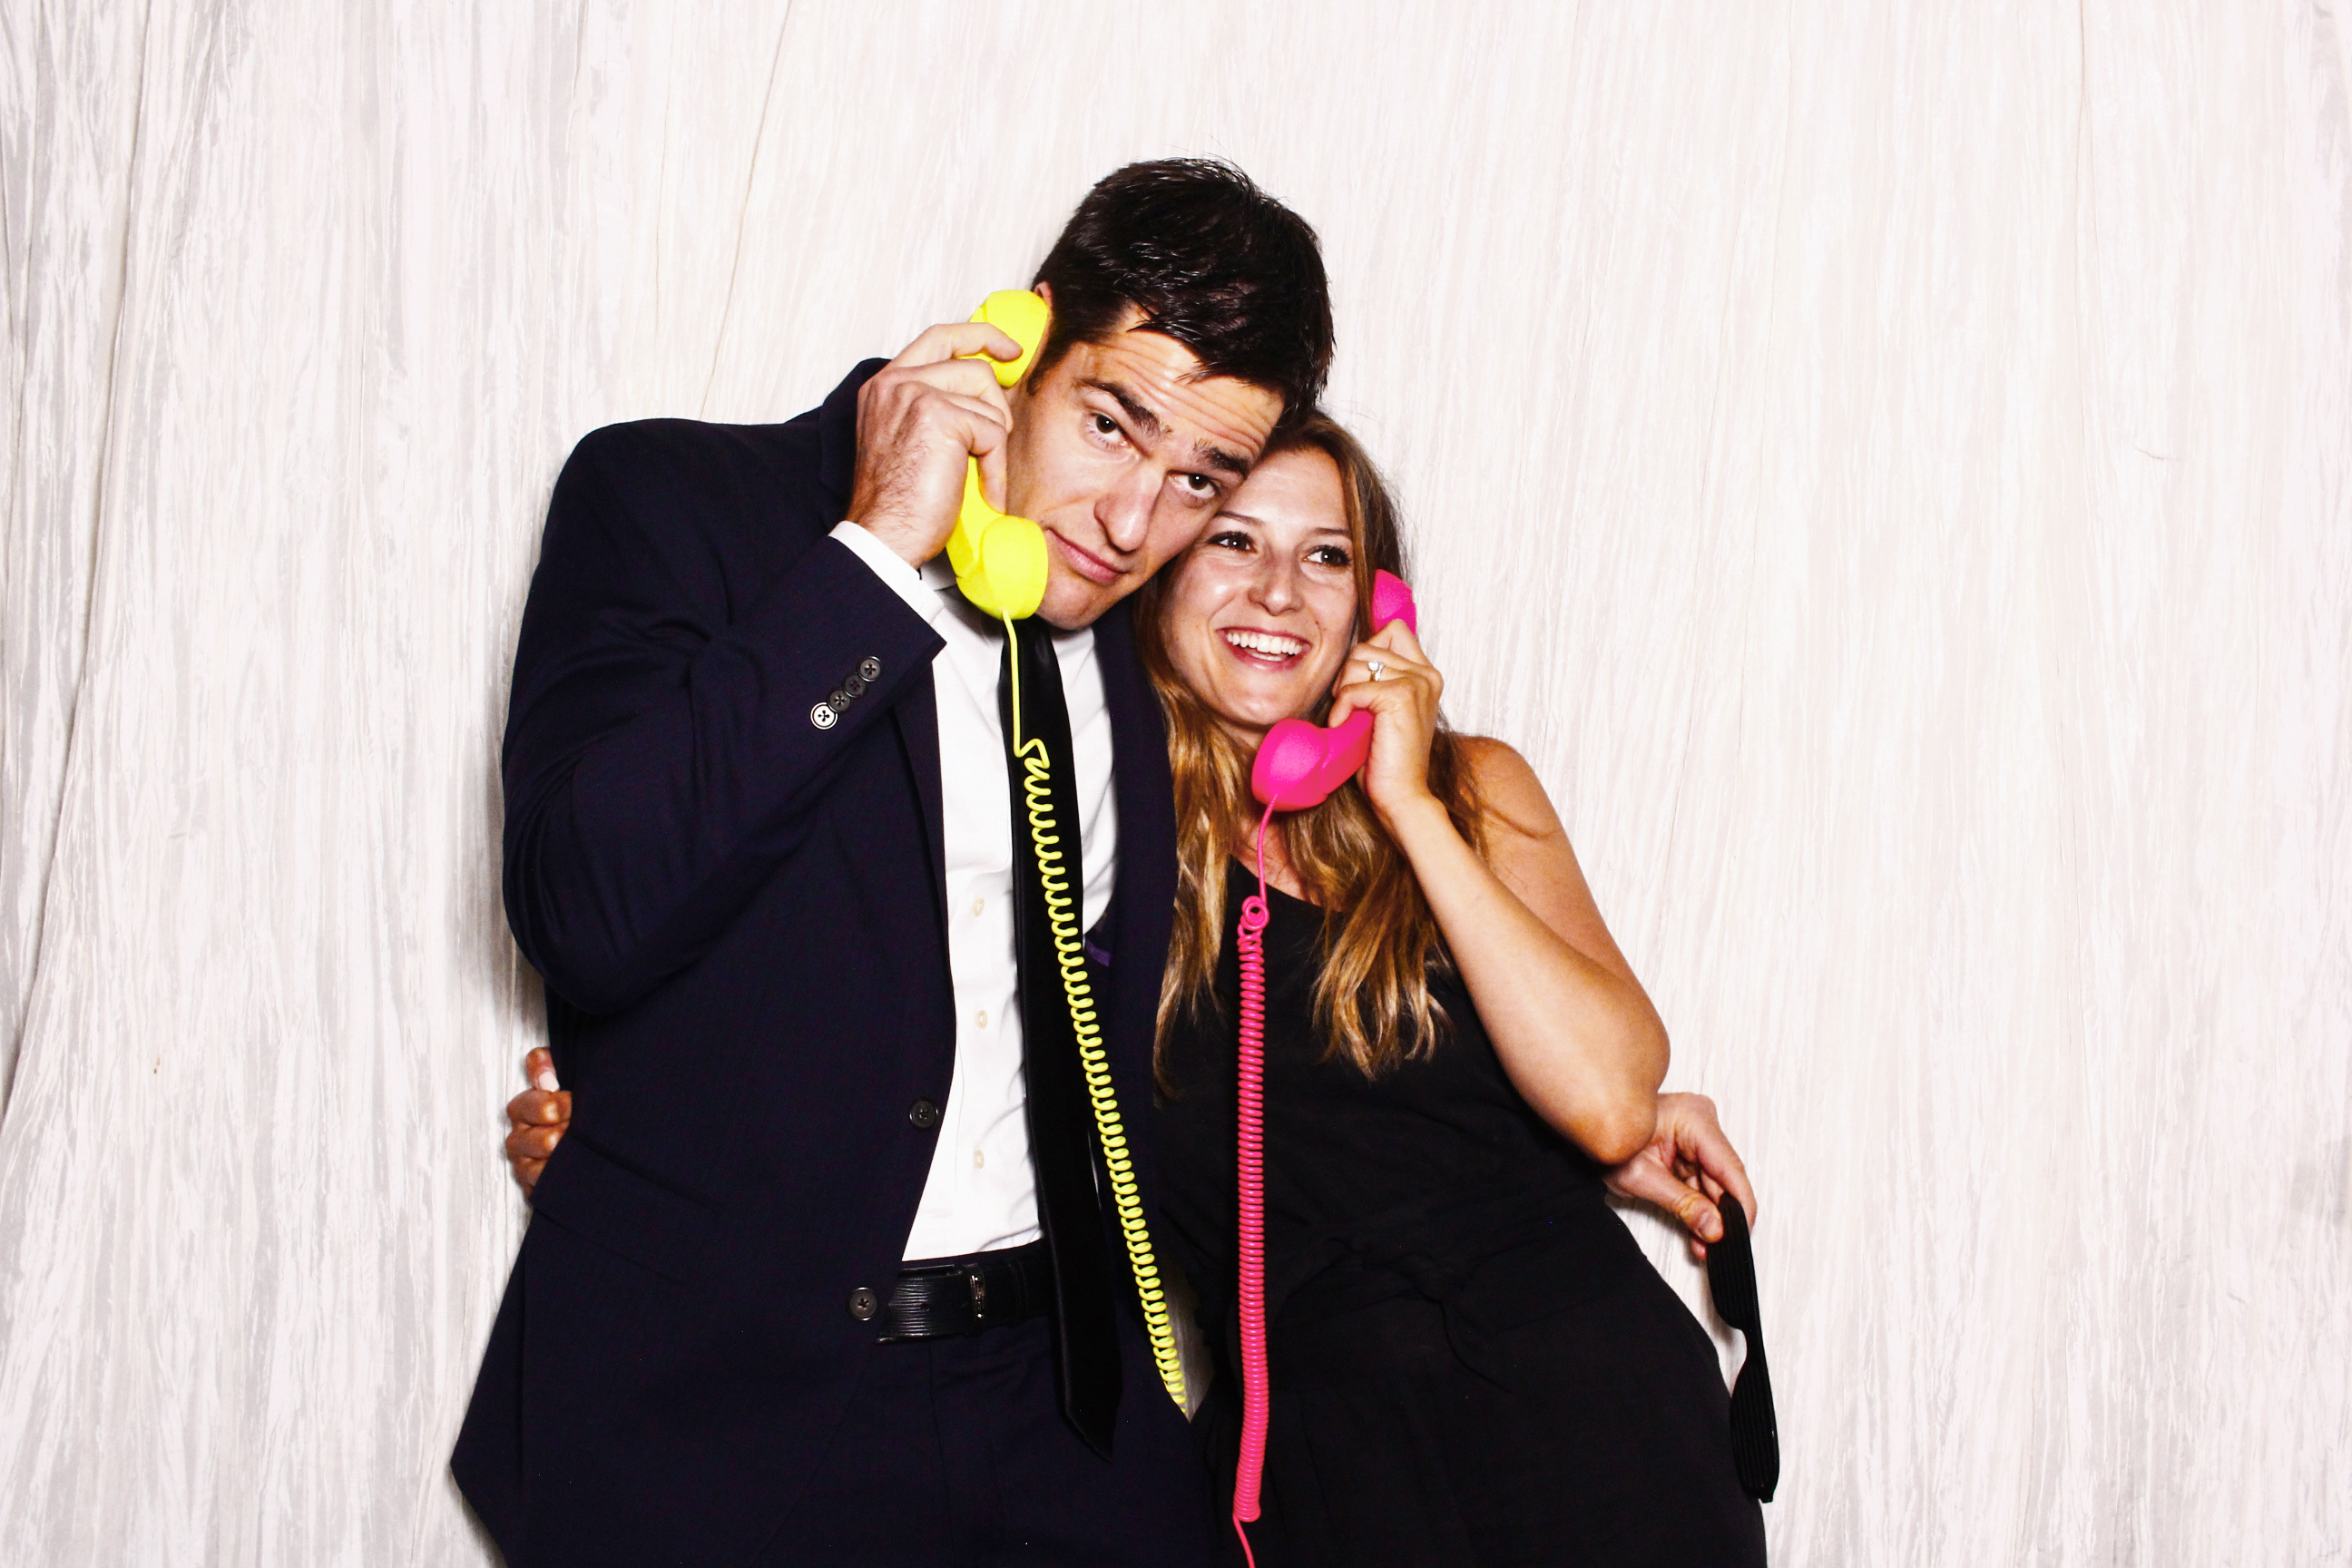 photo booth props bright colored telephones